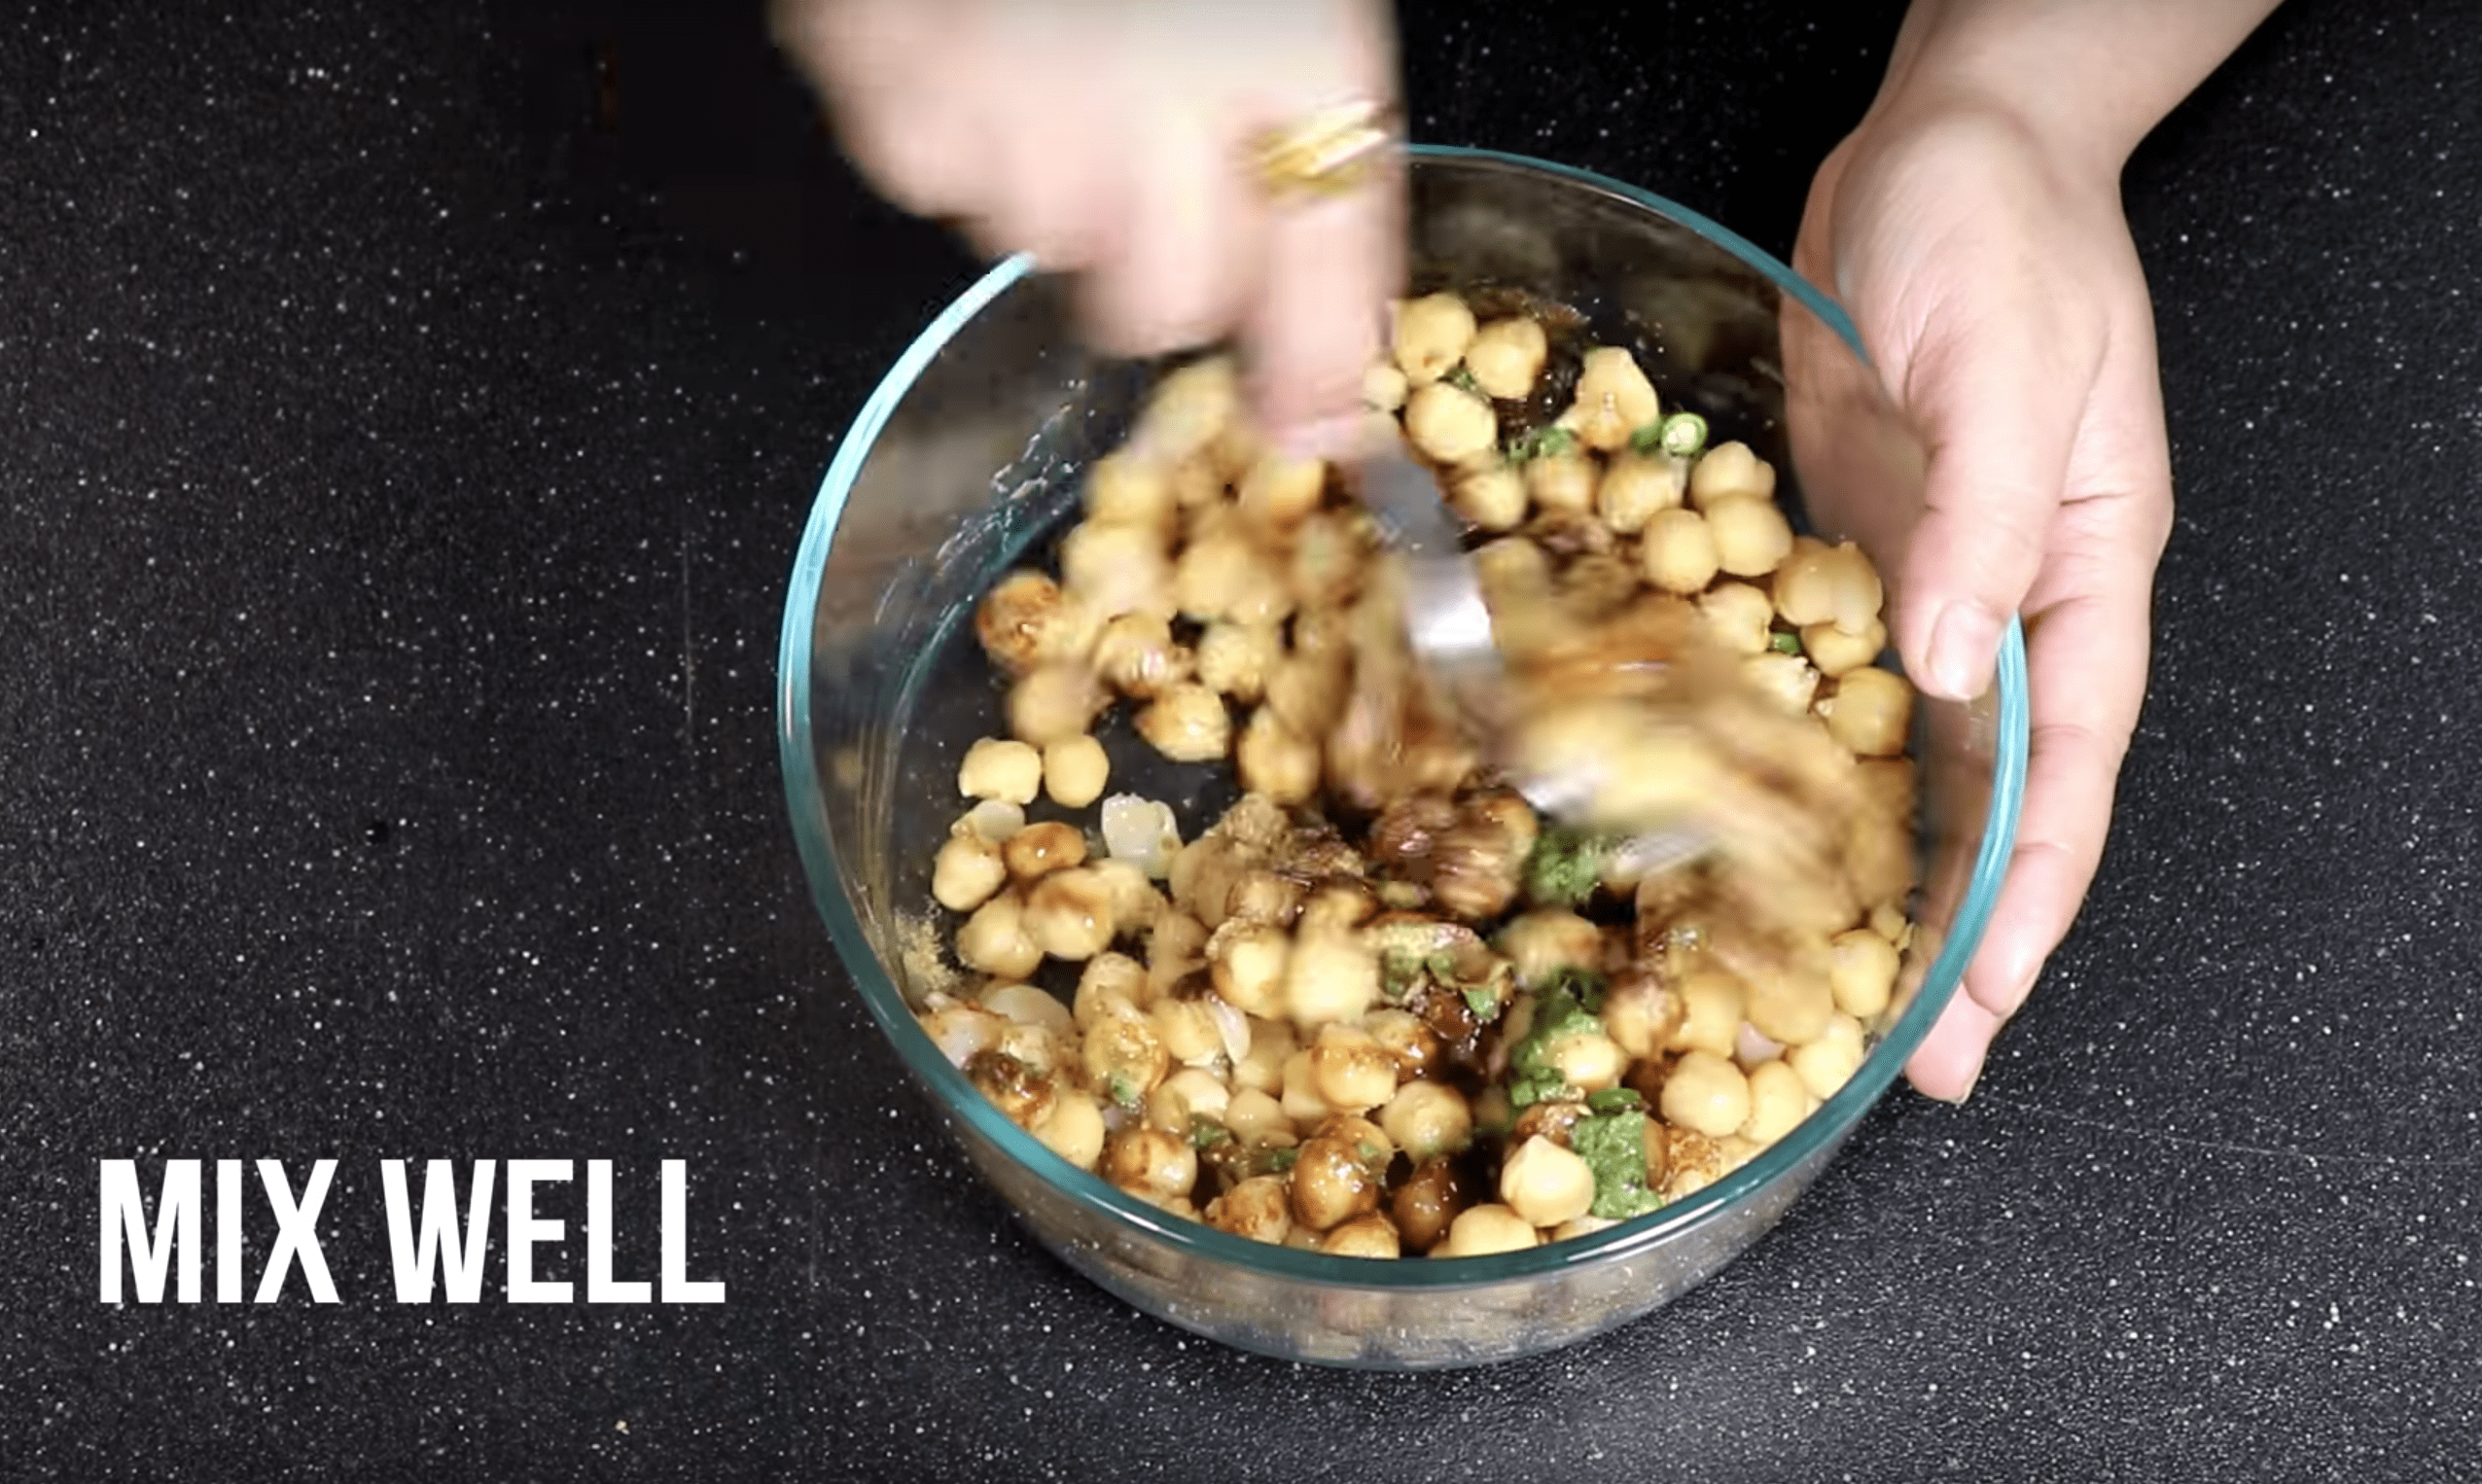 Now Mix Well your Chana Chaat Chickpea Recipe